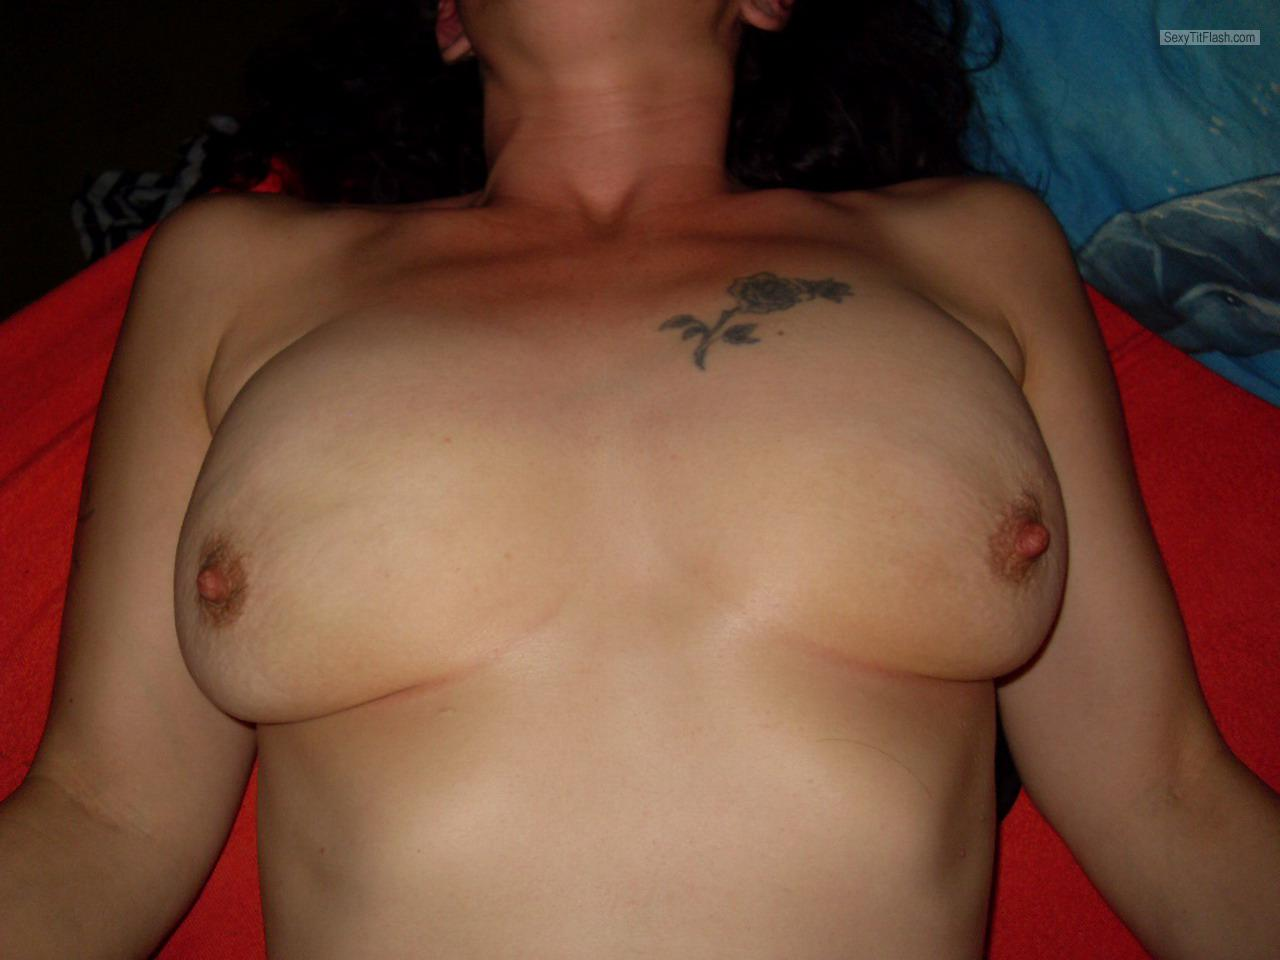 Tit Flash: Room Mate's Medium Tits - Mischelle from Switzerland